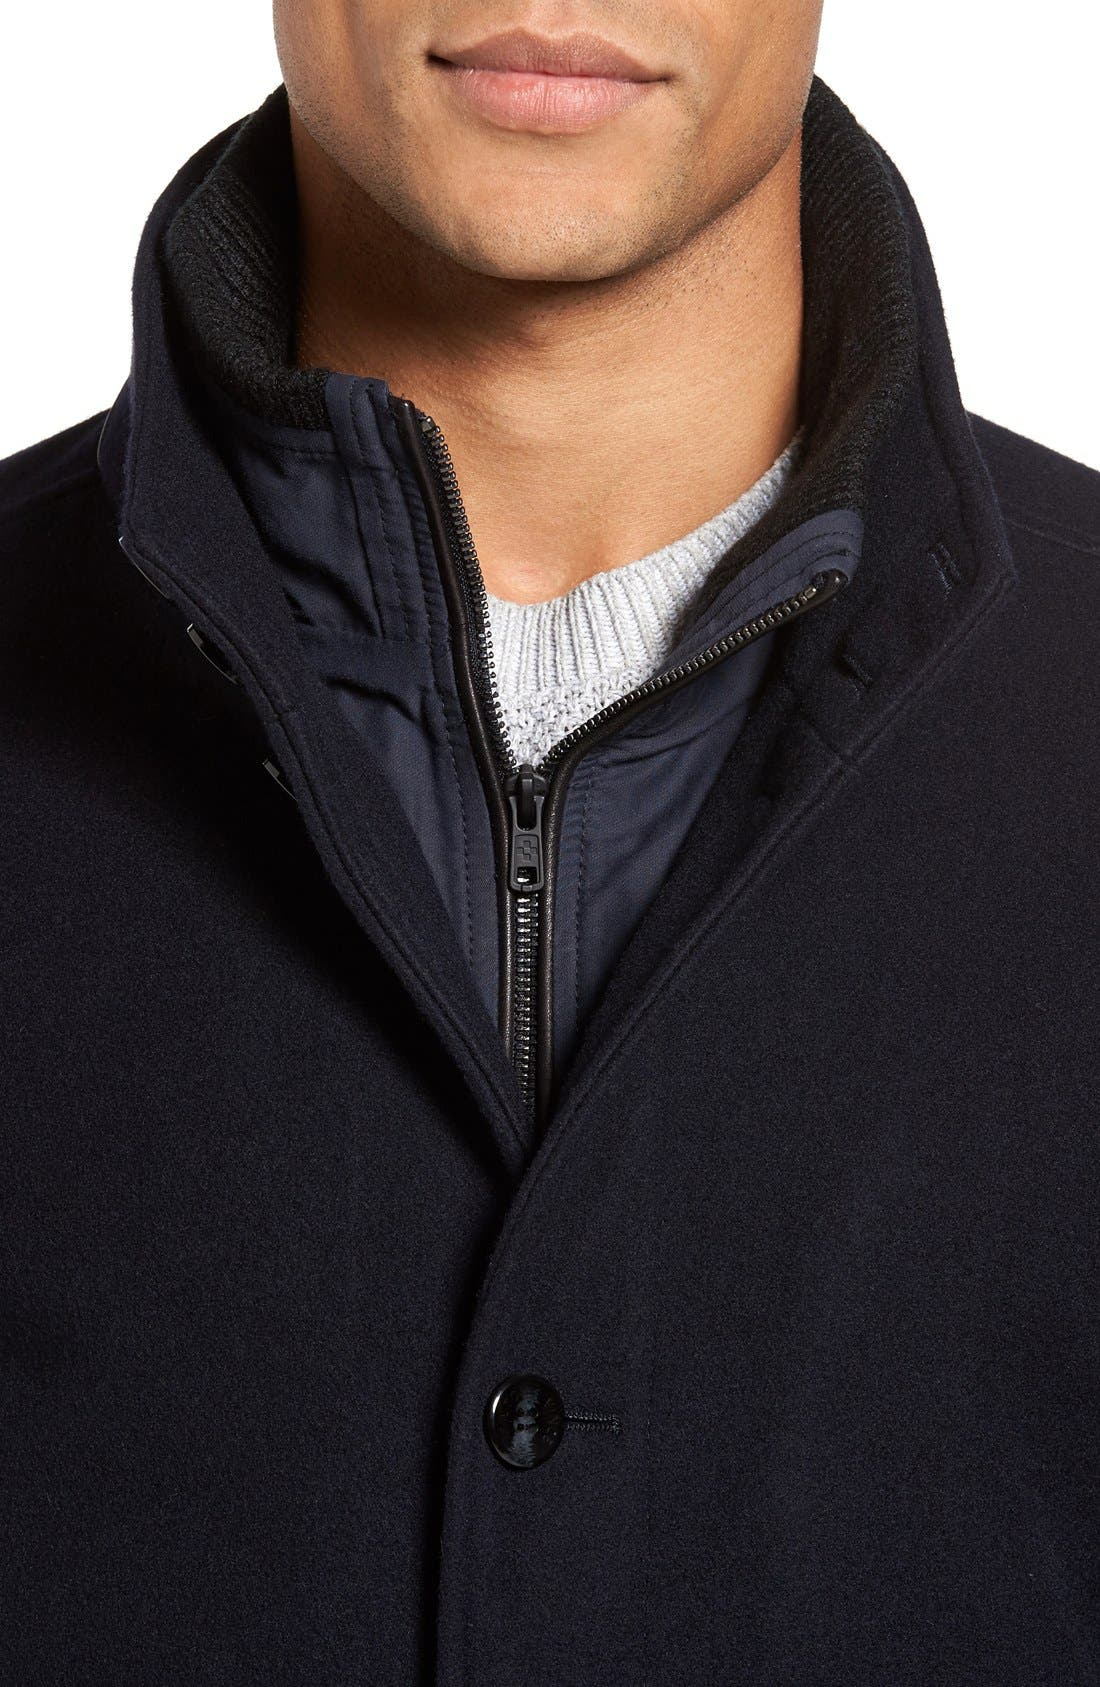 VINCE CAMUTO,                             Classic Wool Blend Car Coat with Inset Bib,                             Alternate thumbnail 5, color,                             NAVY